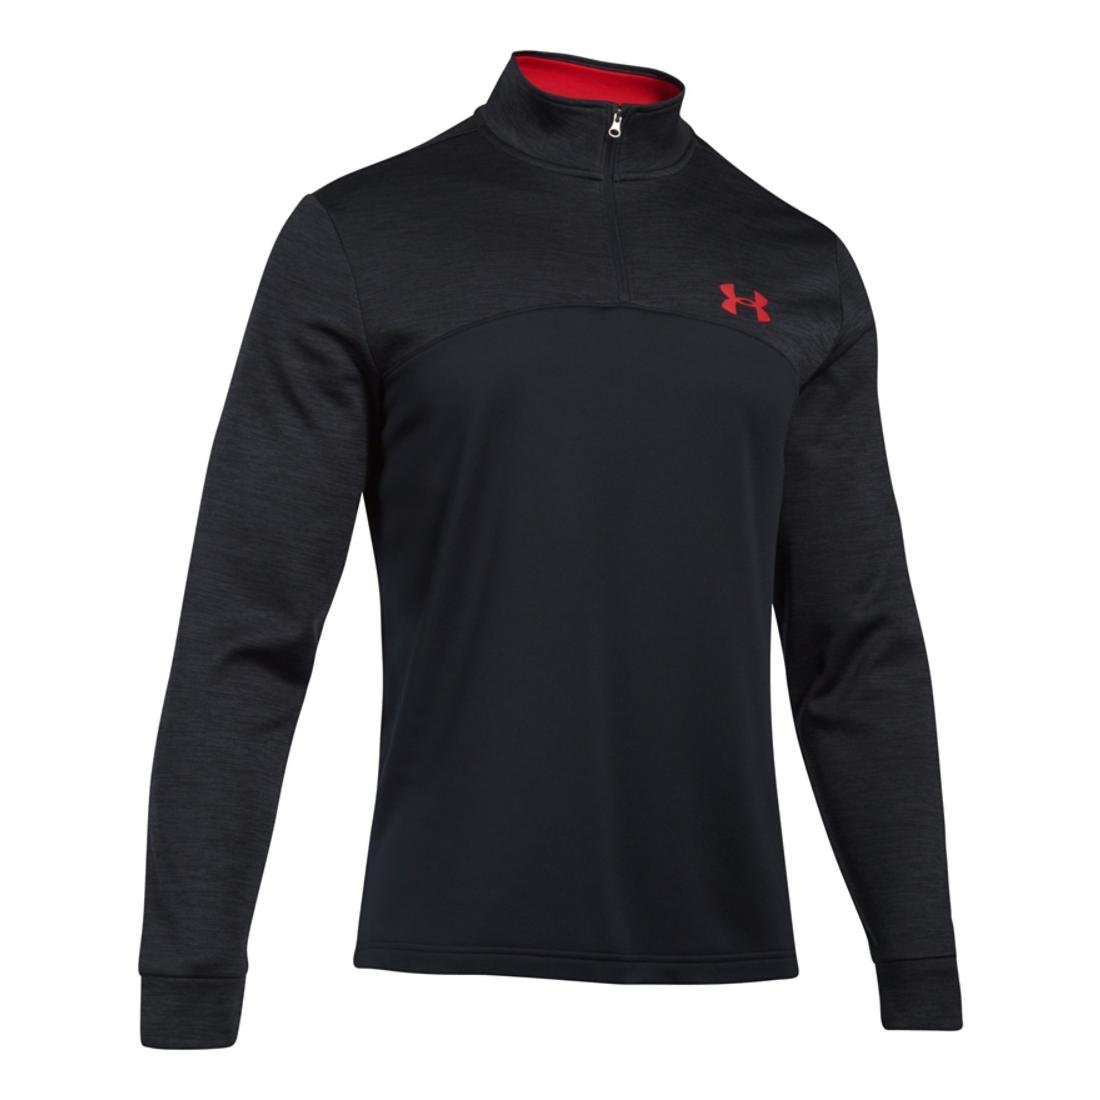 Men's Under Armour Armour Fleece 1/4 Zip, Black/Red, XS-R by Under Armour (Image #1)